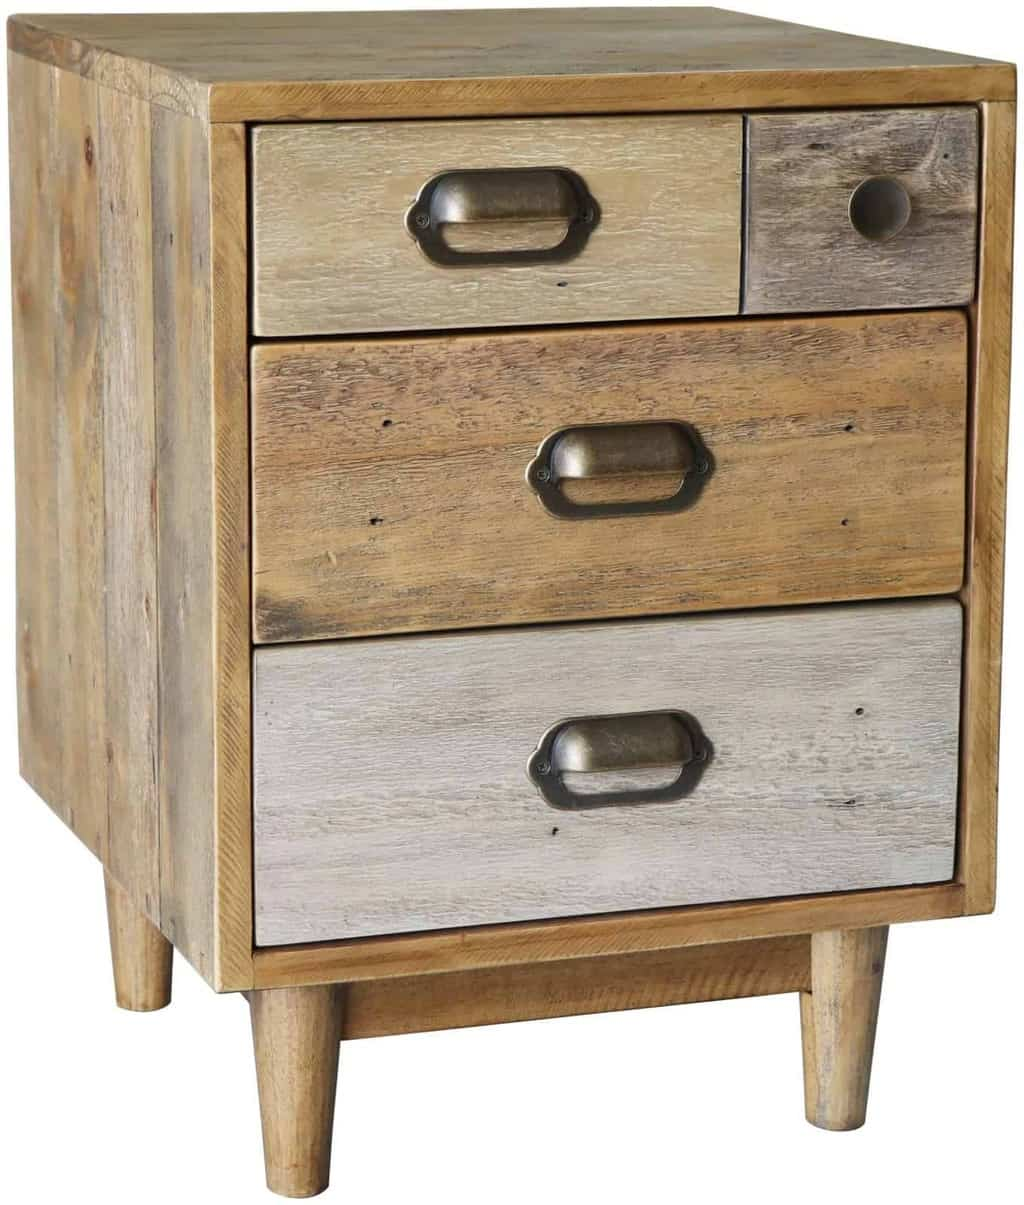 Corby Solid Reclaimed Pine Wood Bedside Cabinet Stand Unit